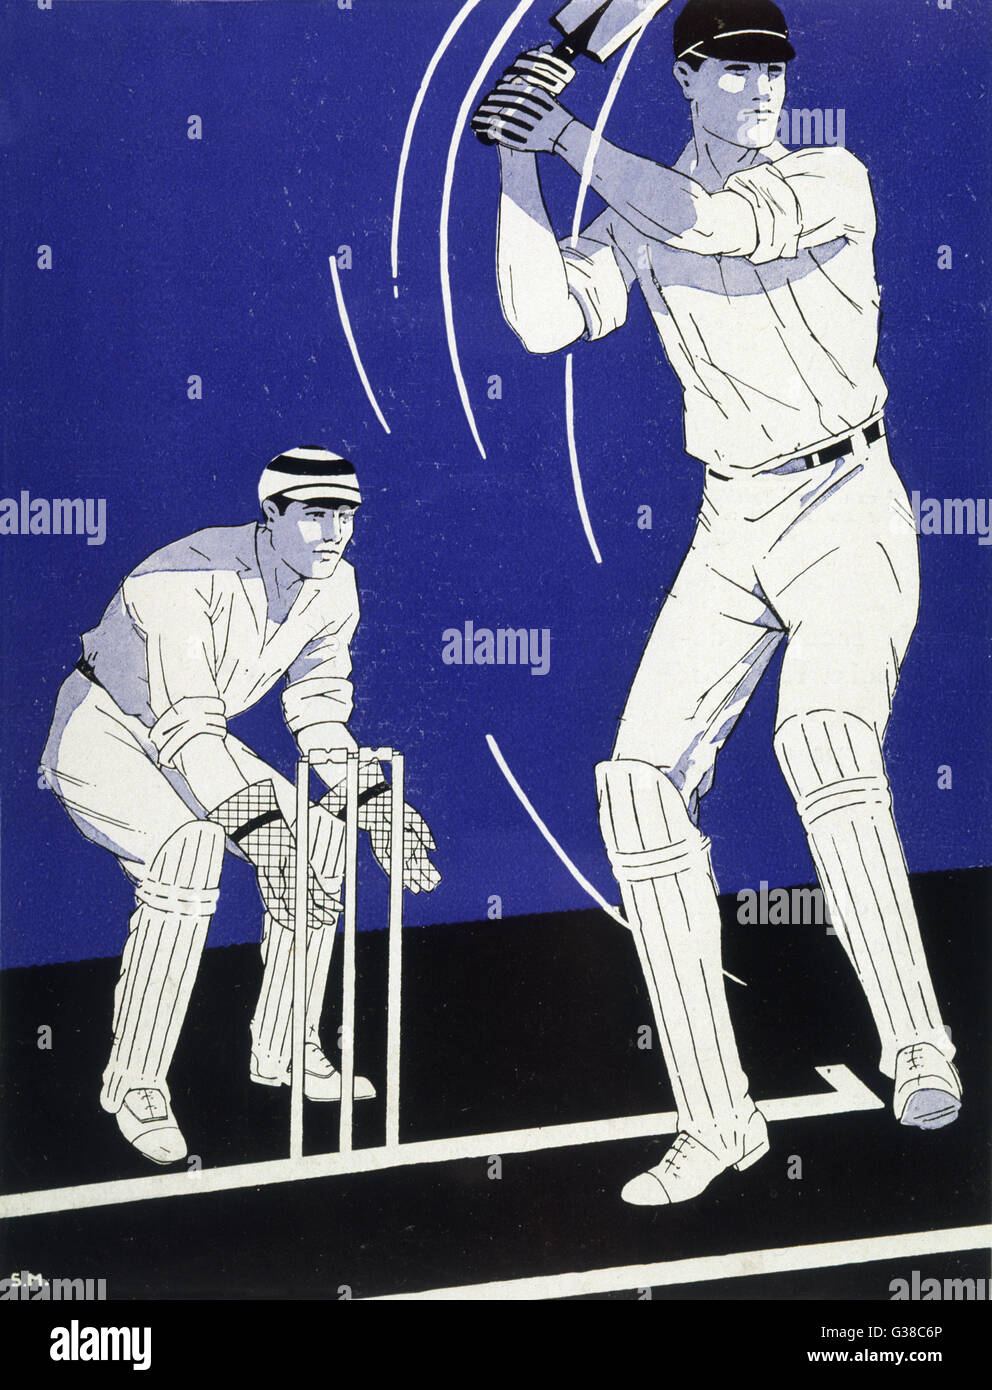 A batsman plays a stroke in  front of the wicketkeeper         Date: 1928 - Stock Image